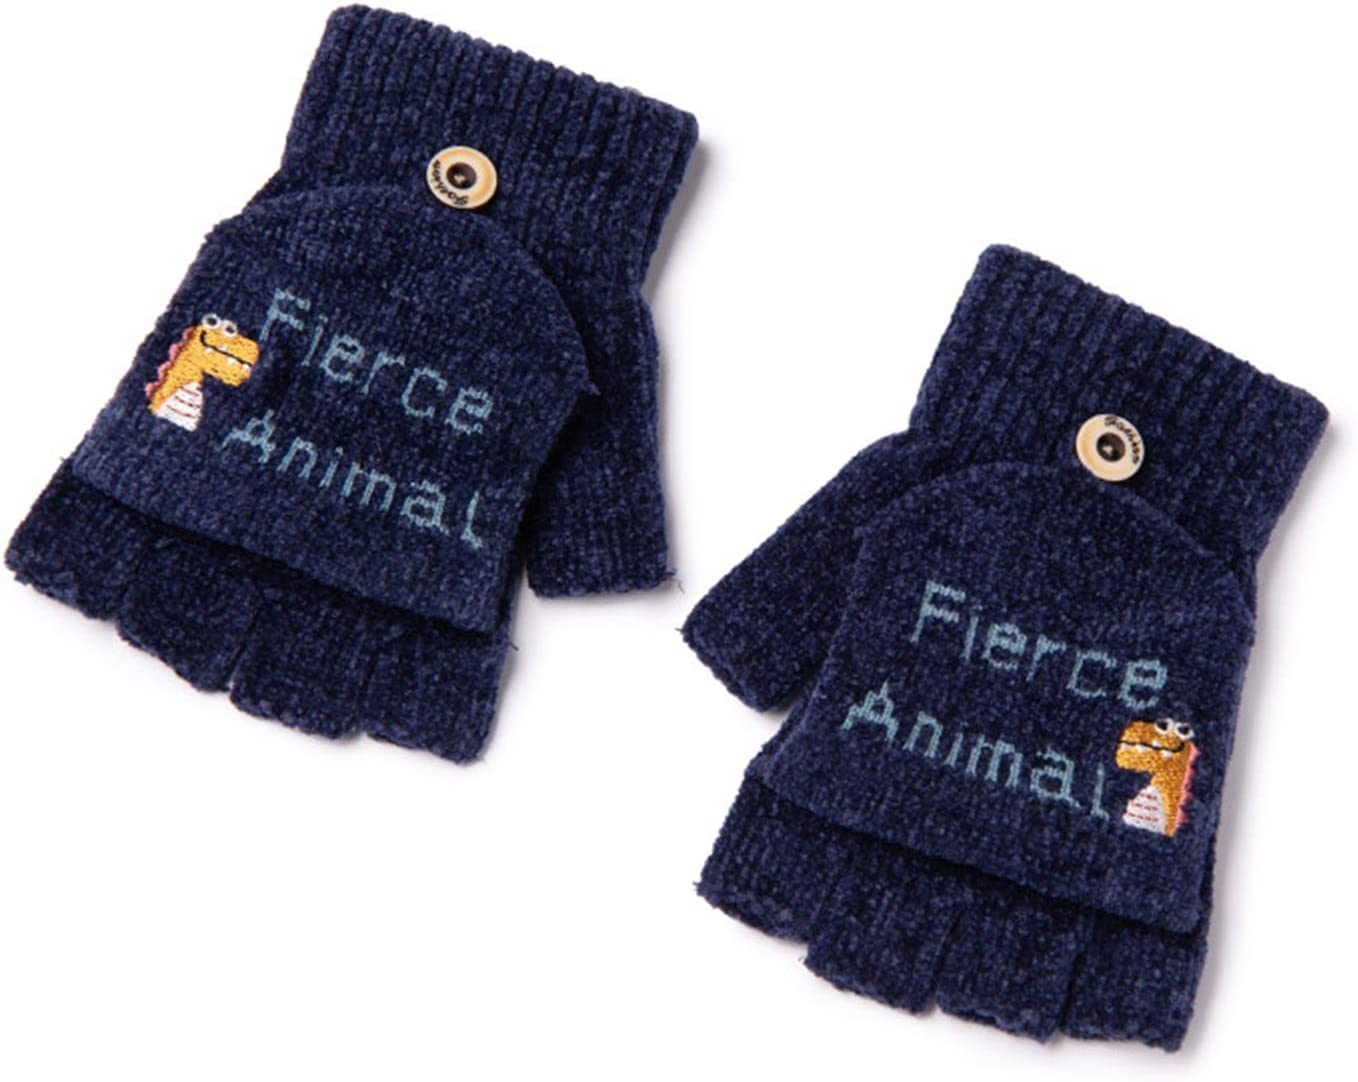 FOLDING Hats Caps Texting Gloves Touch Screen Gloves Stretch Knitting Mechanical Gloves Winter Warm Gloves (Color : Tibetan Blue Color)